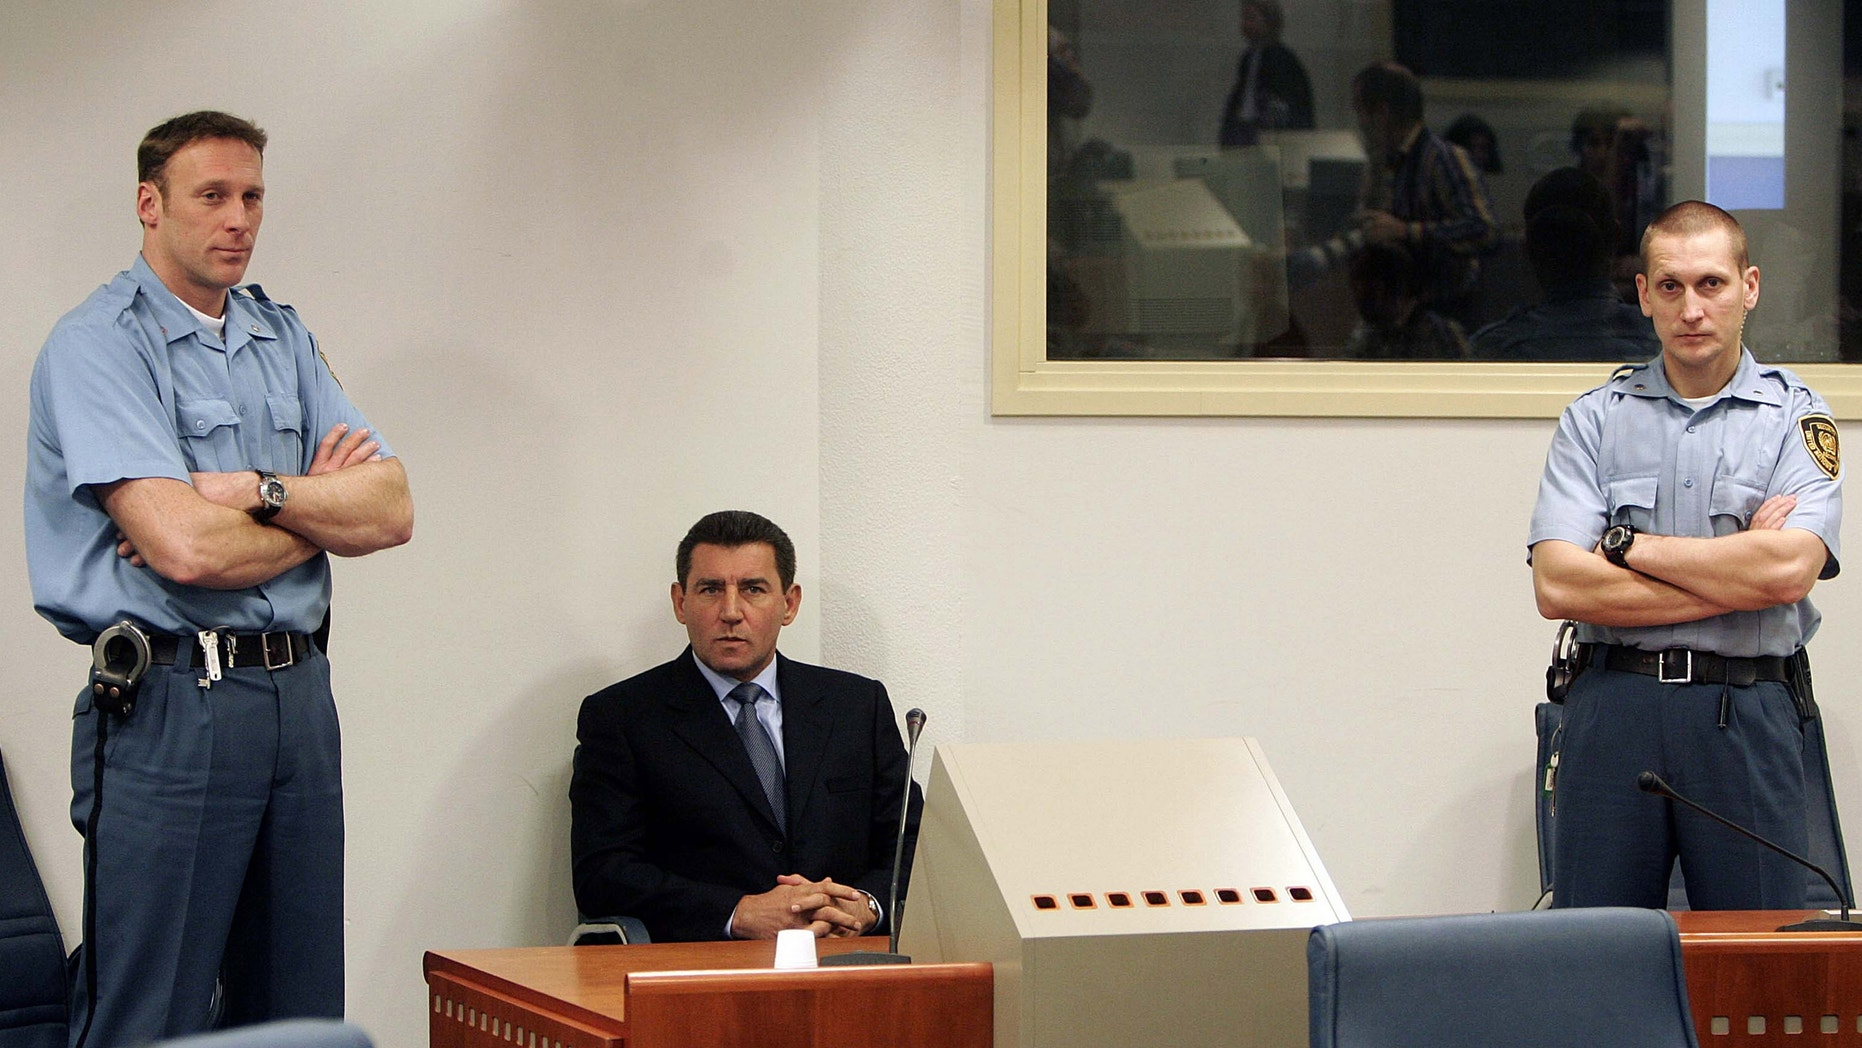 FILE: Former Croatian General Ante Gotovina, center, during his initial appearance at the courtroom of the Yugoslav war crimes tribunal in The Hague, the Netherlands.